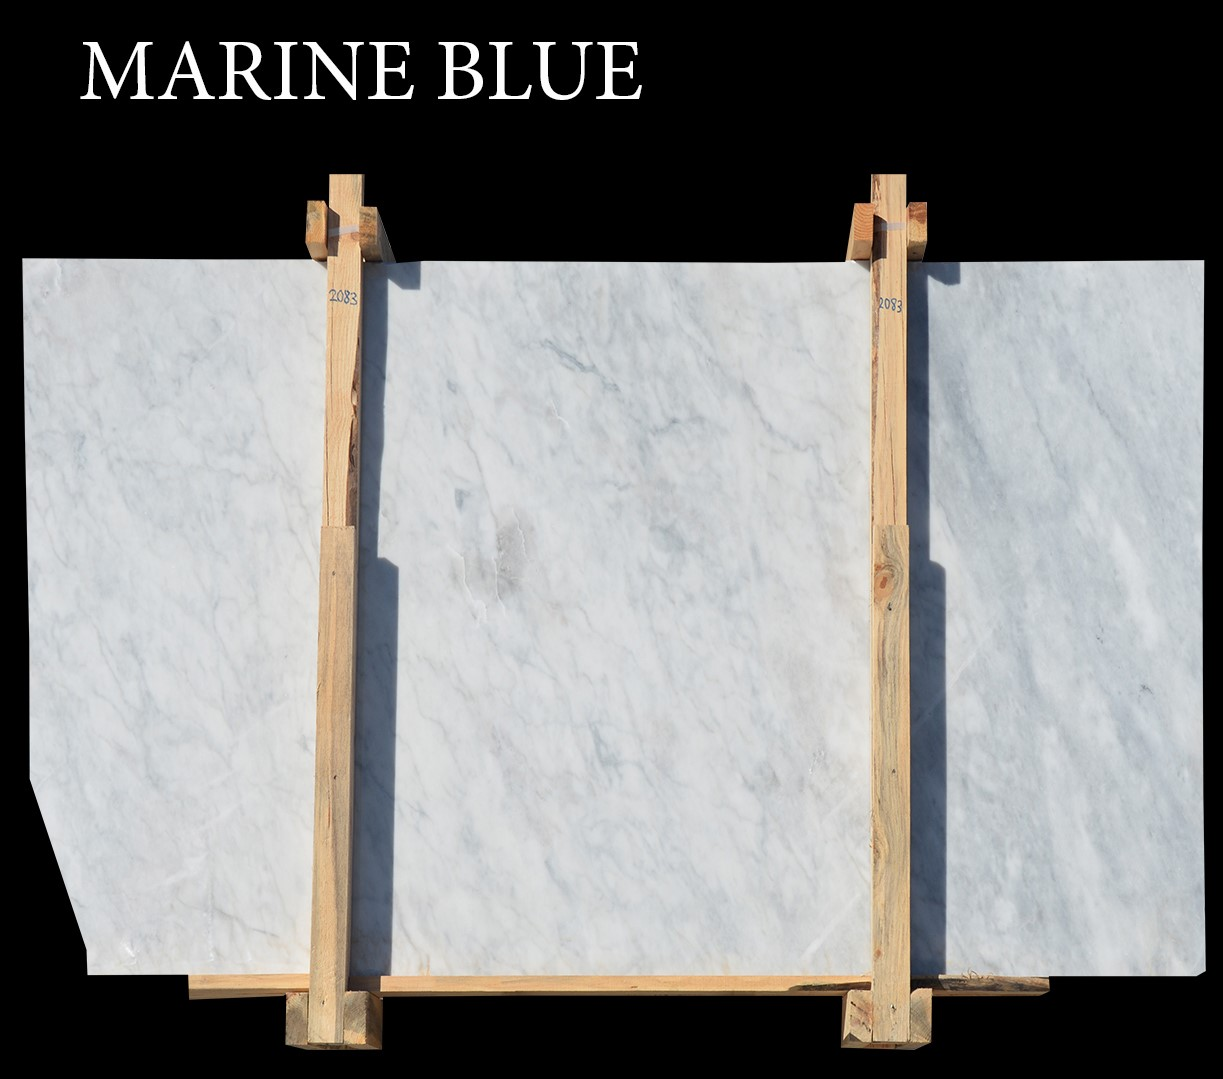 Afyon White Marble  Marine Blue